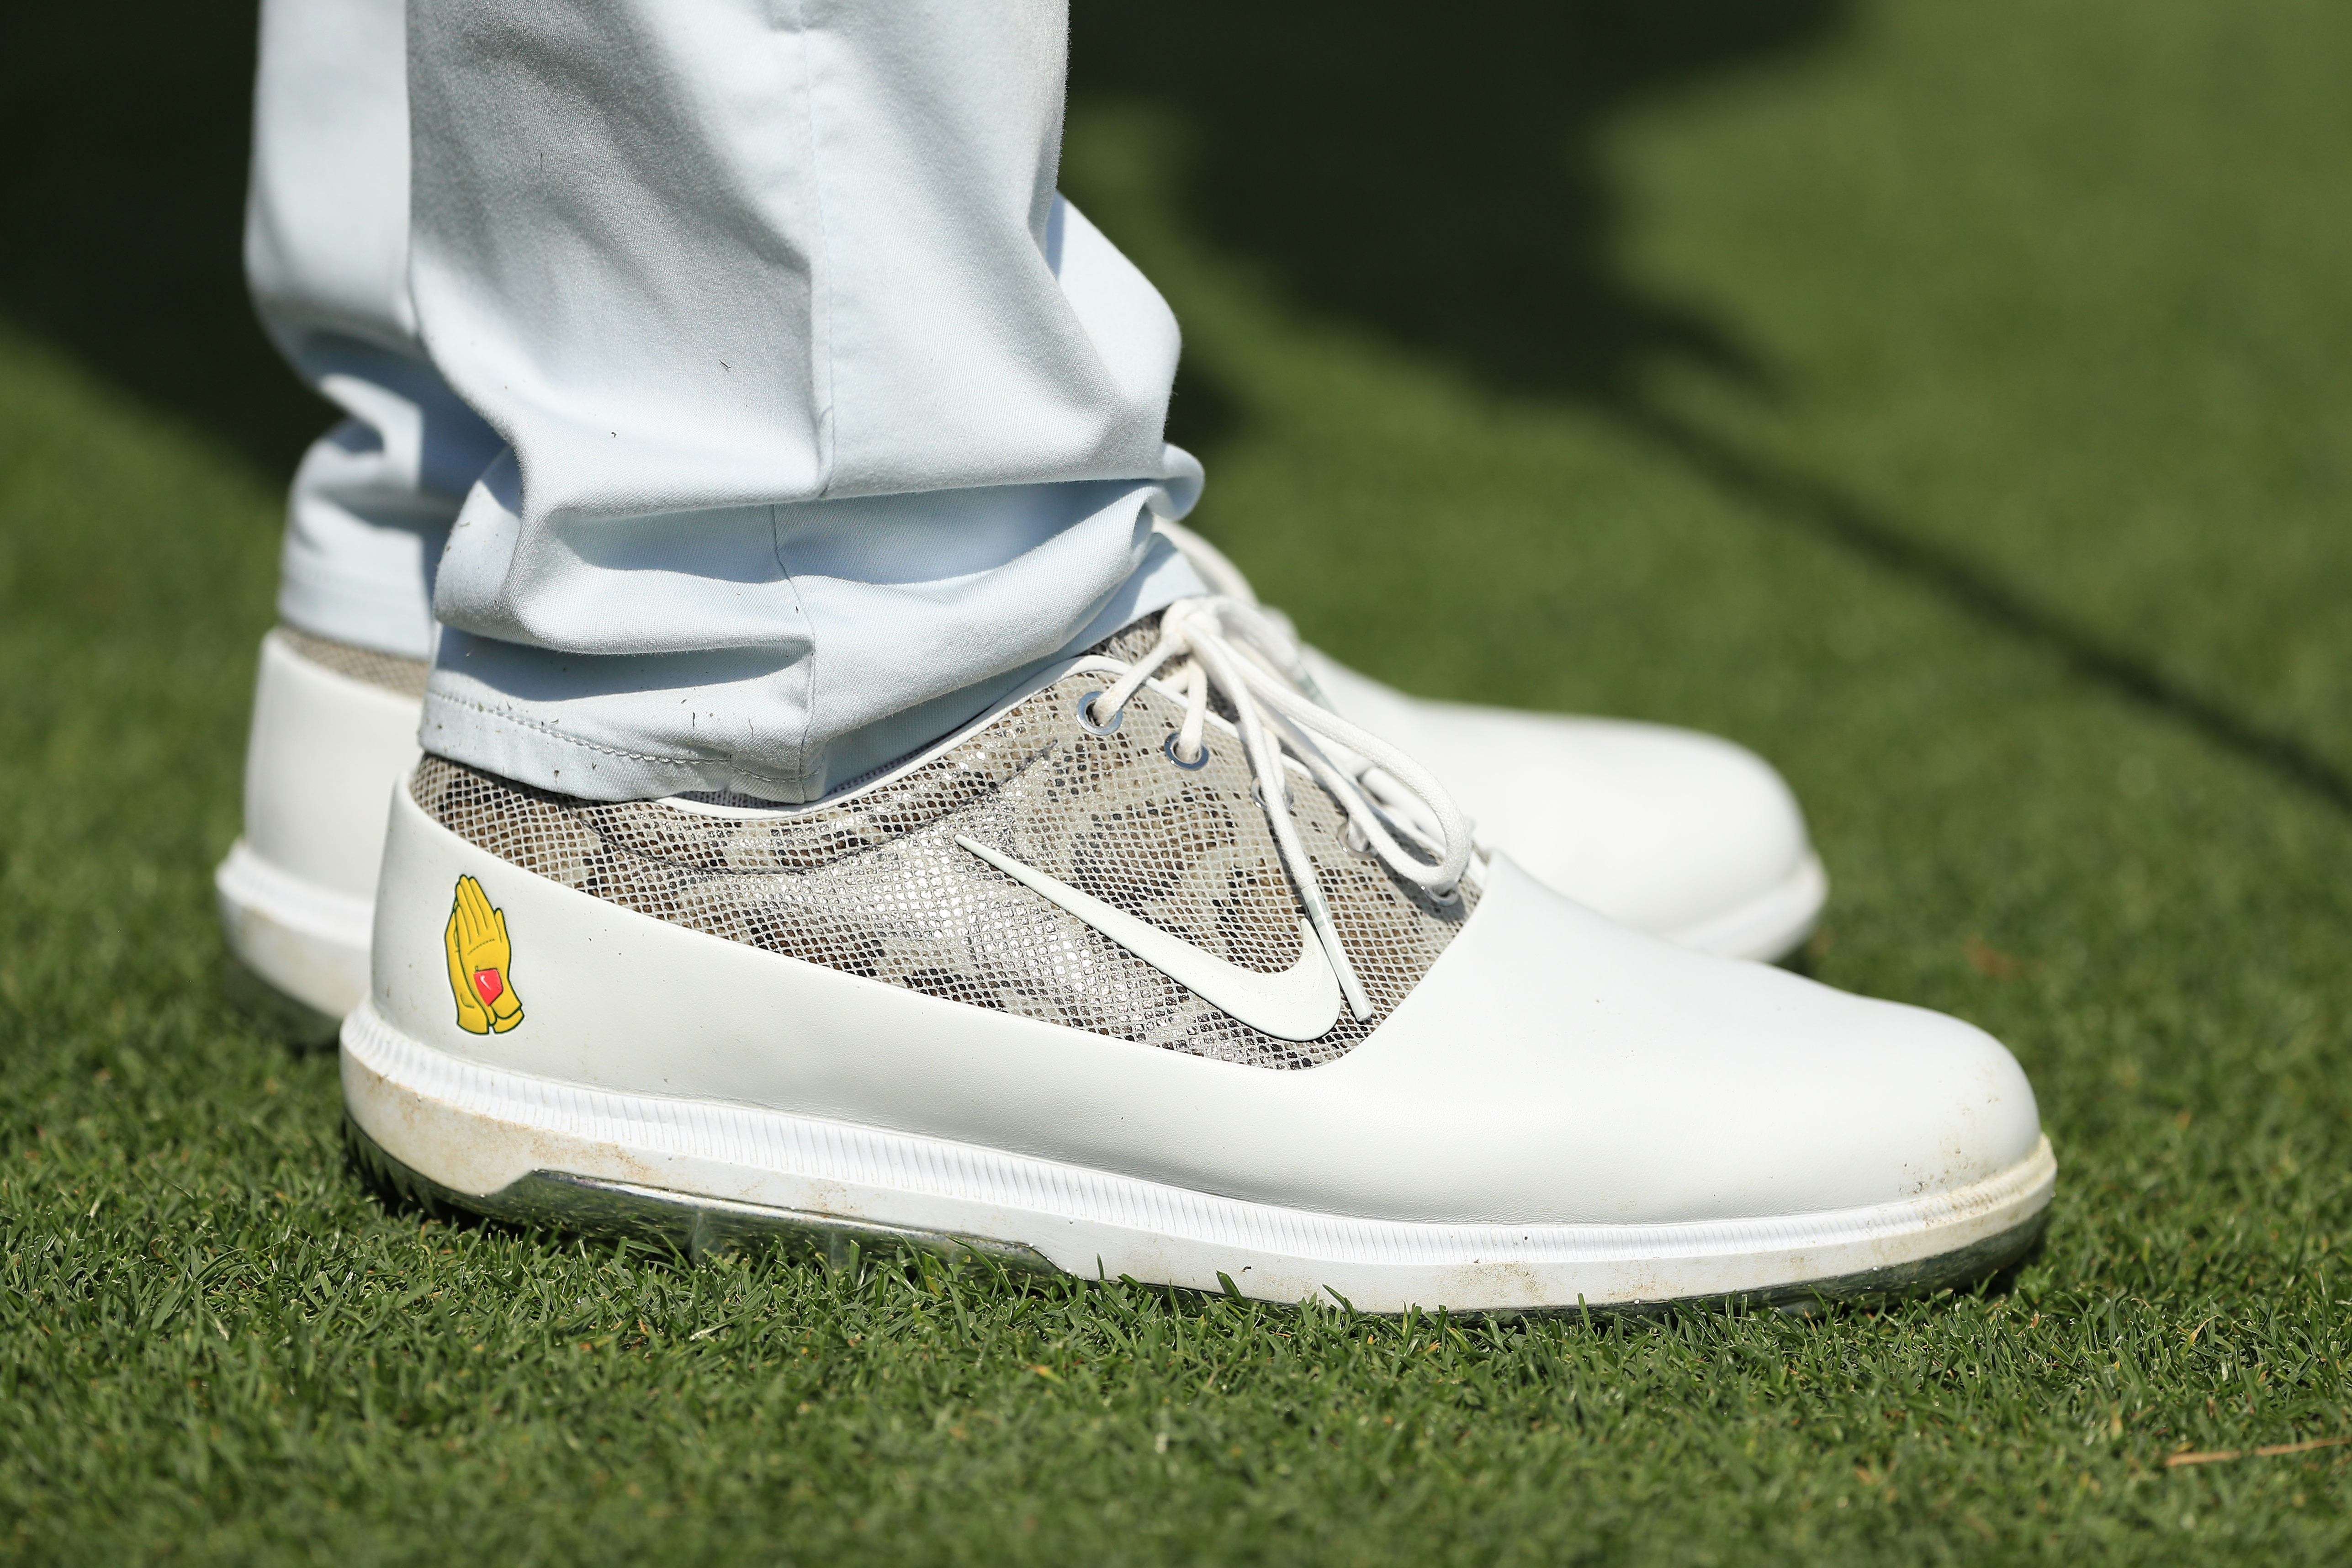 Masters 2019: The special edition shoes